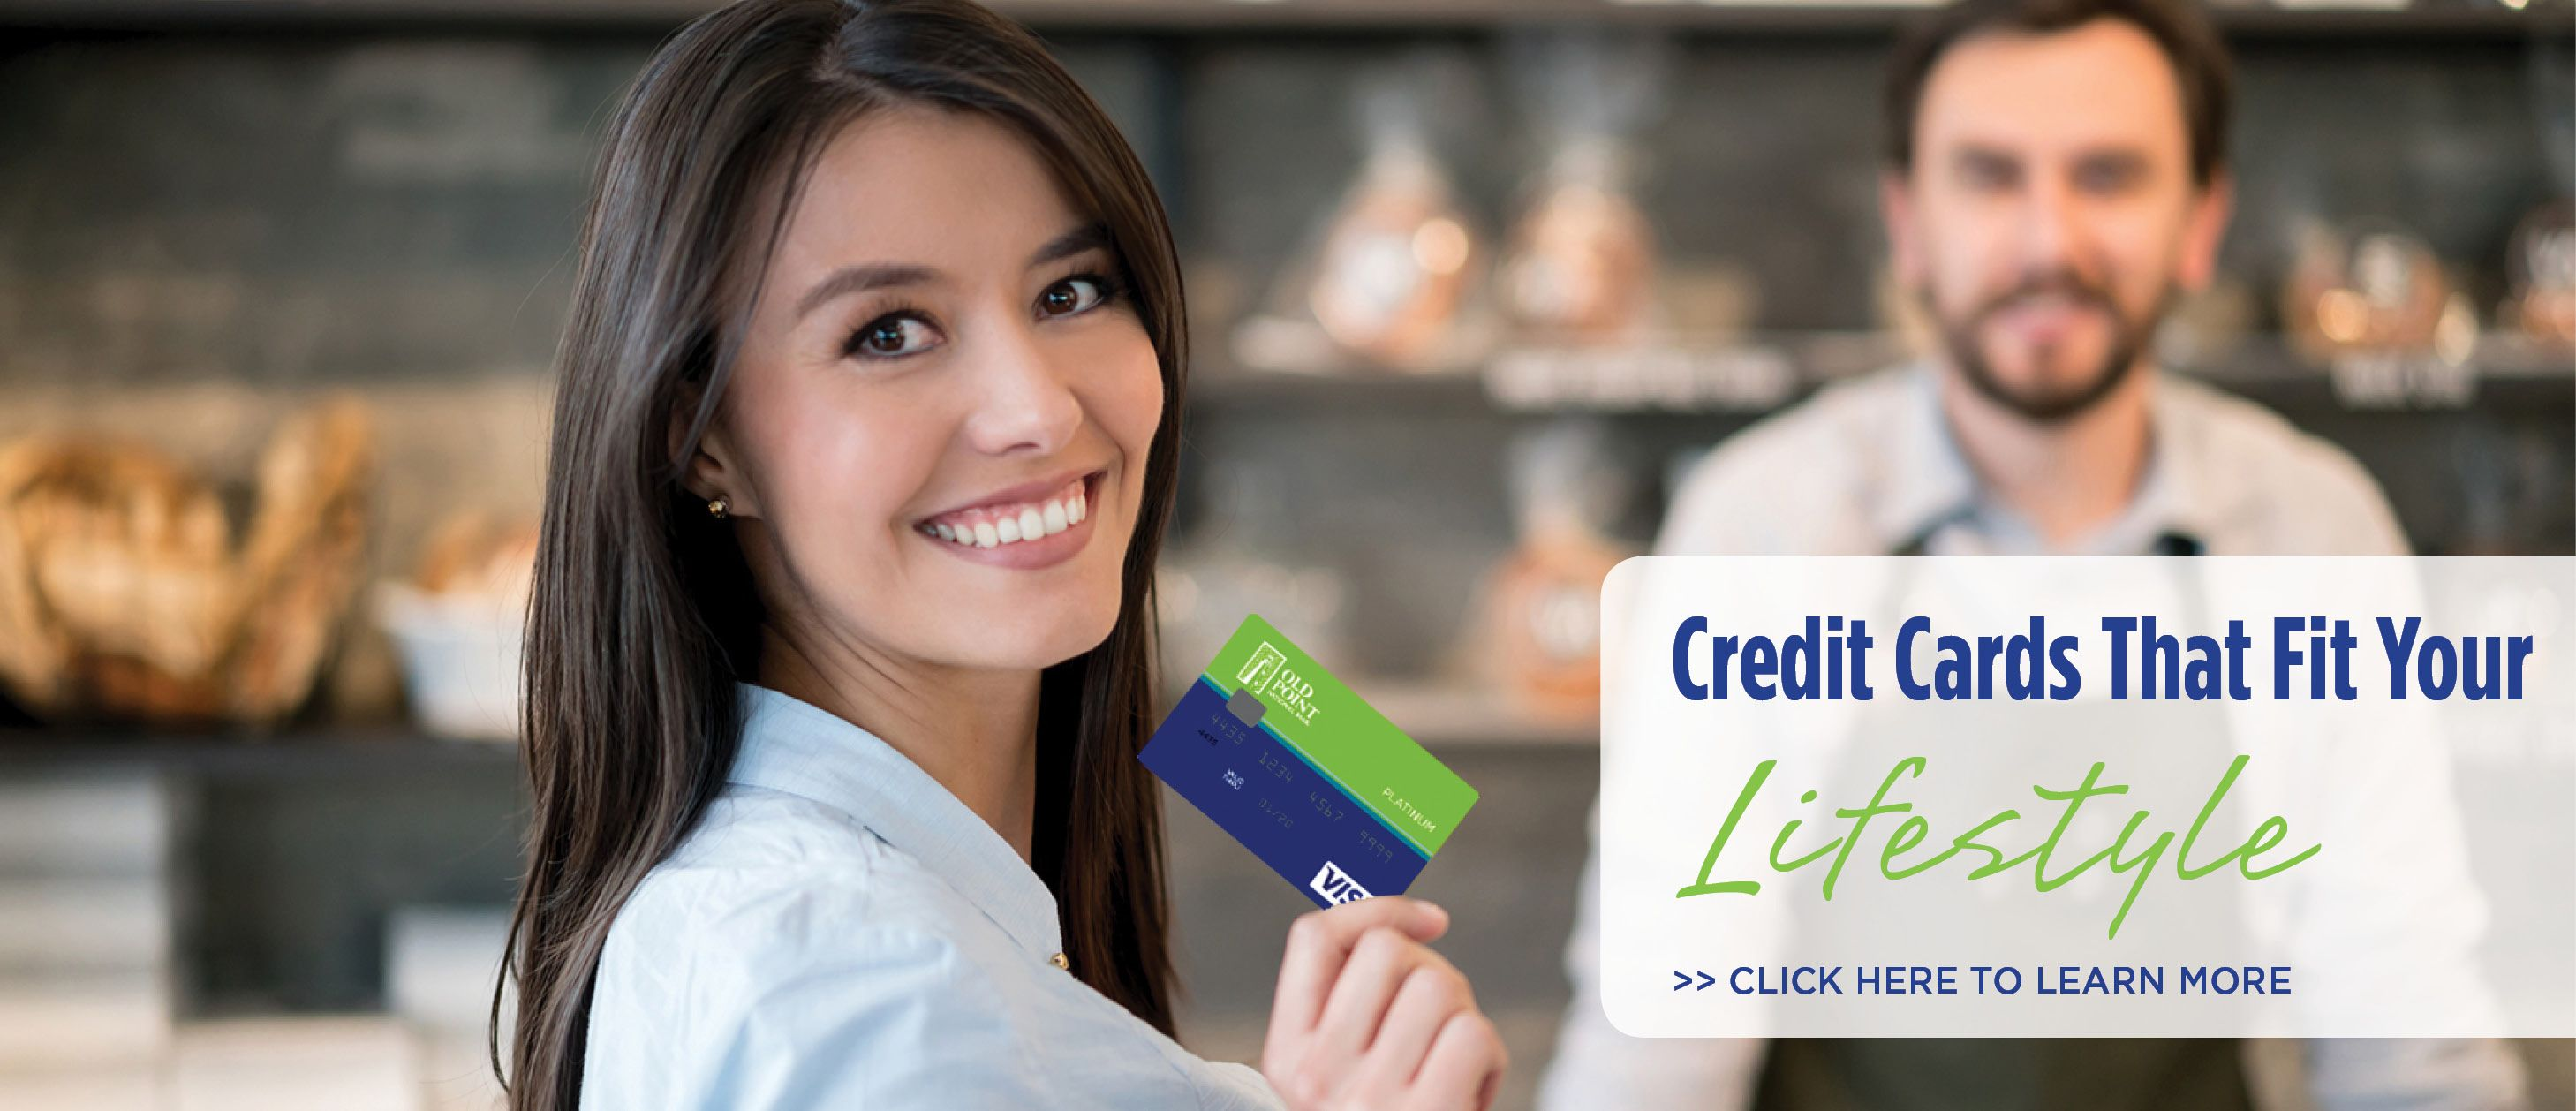 Visa Credit Cards_Home Slider Banner.jpg